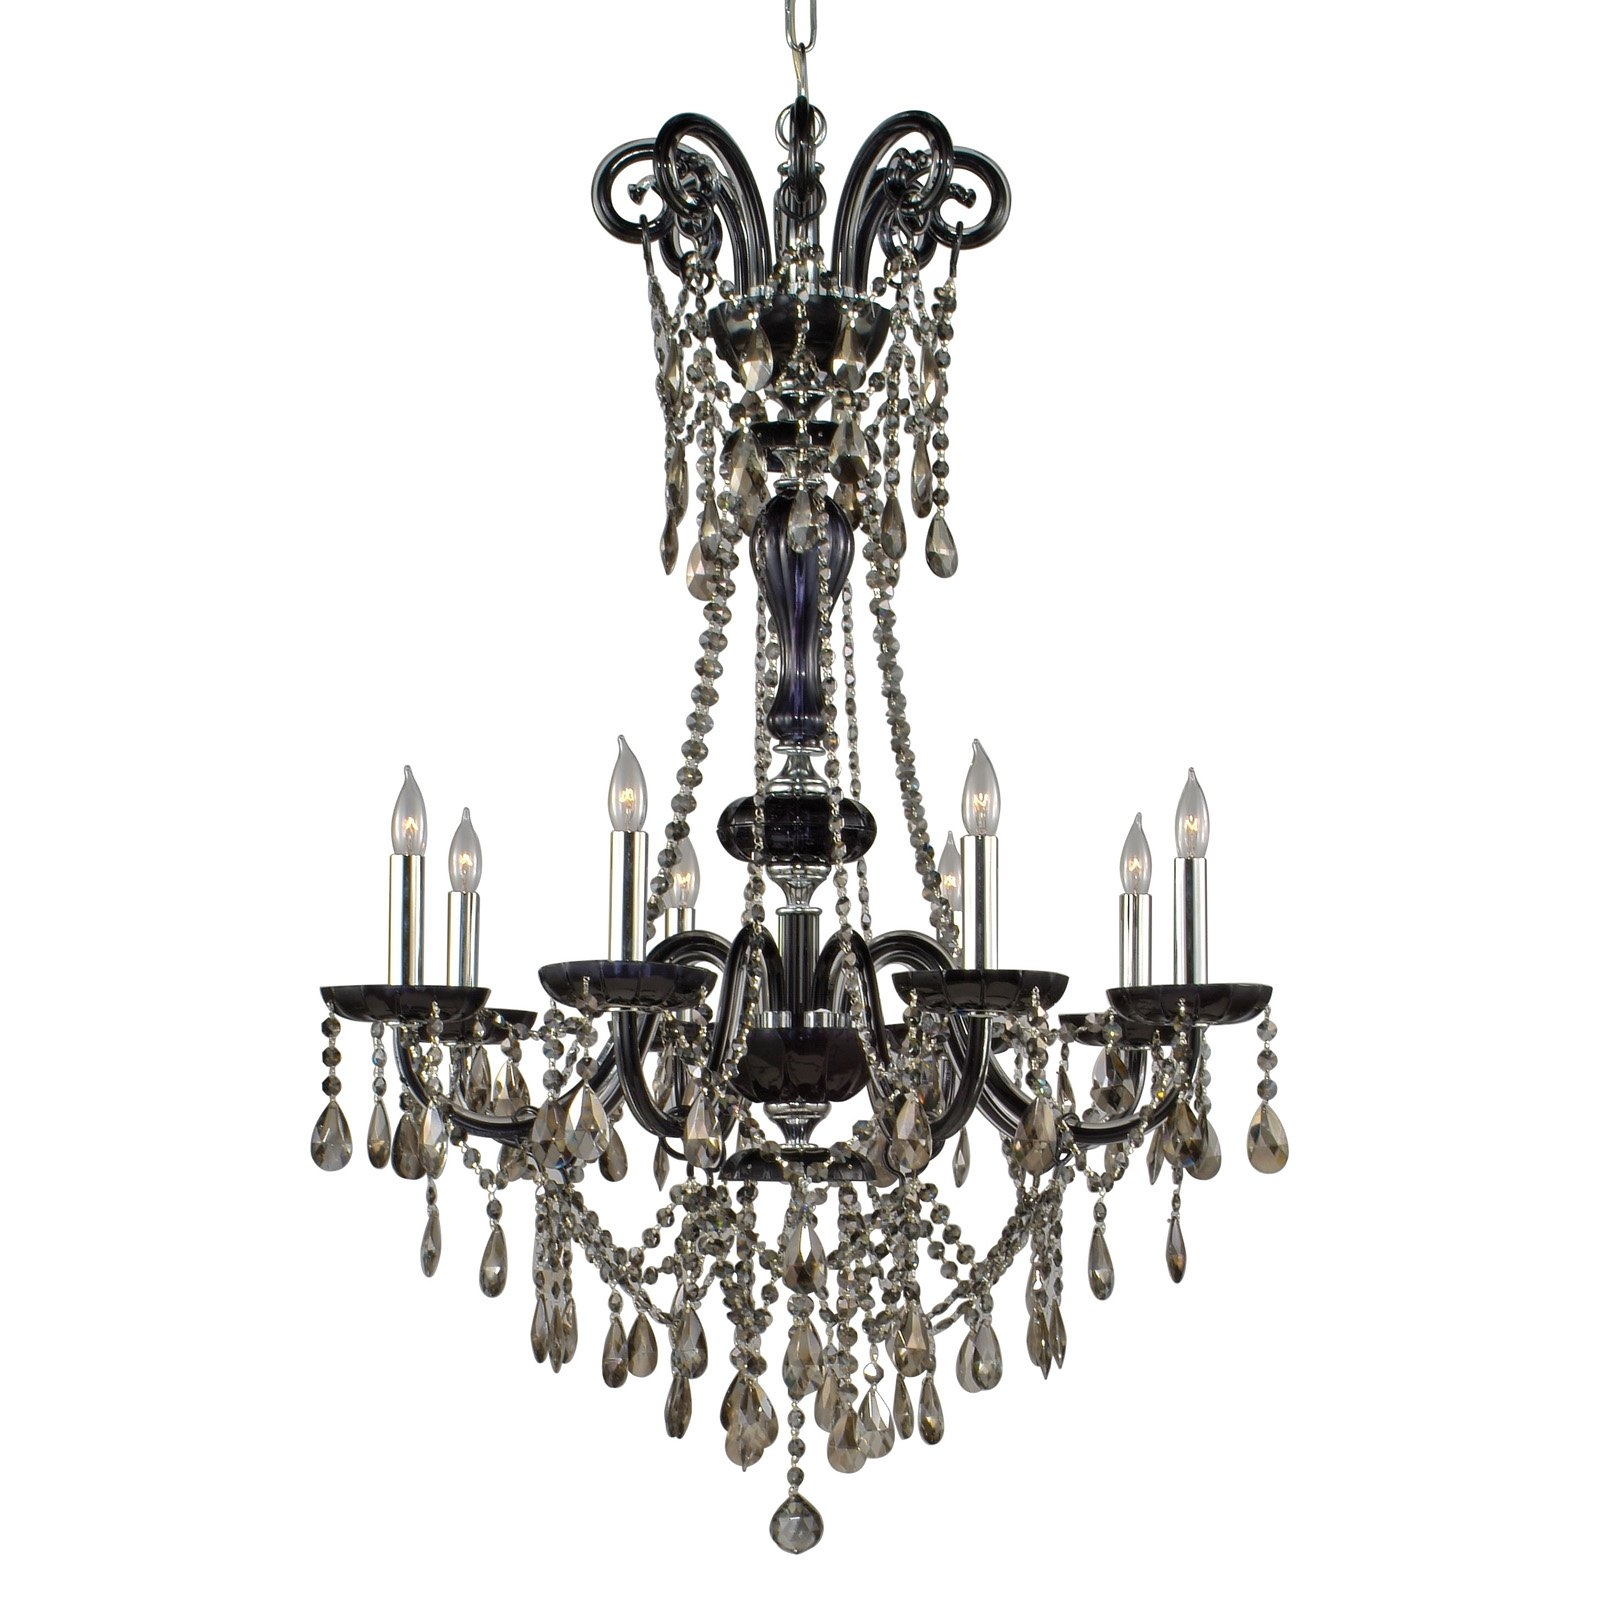 Air Versailles Chandelier 30w In Black Chandeliers At Hayneedle With Black Gothic Chandelier (View 12 of 15)